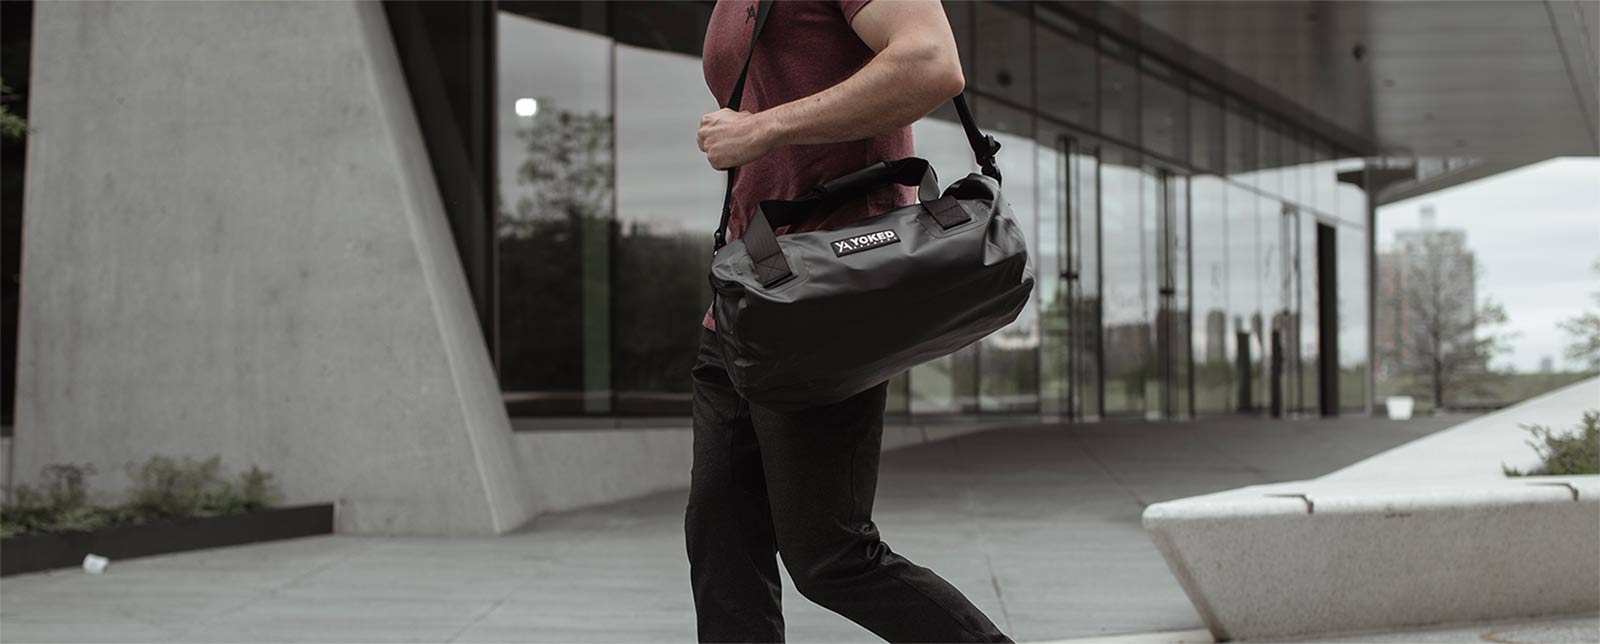 Burgundy muscle fit t-shirt with black tarp waterproof duffel bag YA Yoked Apparel